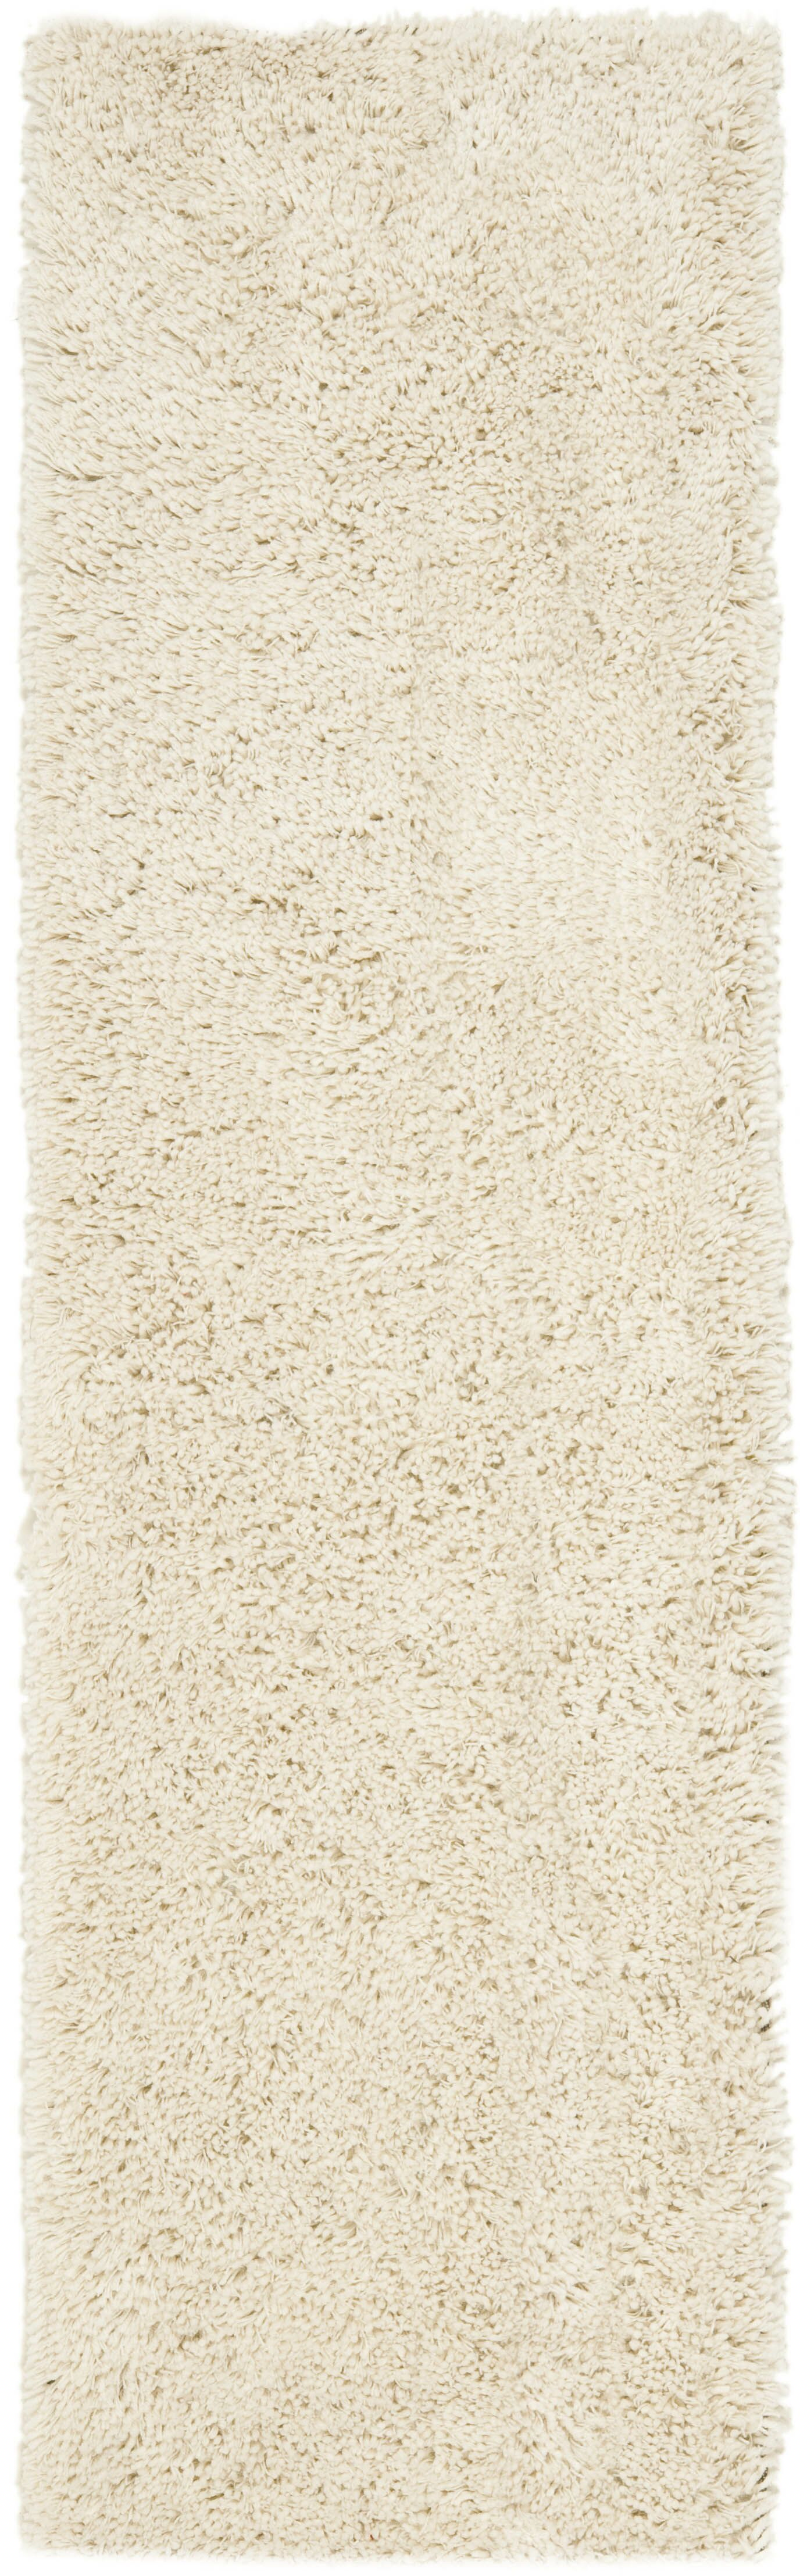 Kirtley White Shag Area Rug Rug Size: Runner 2'3